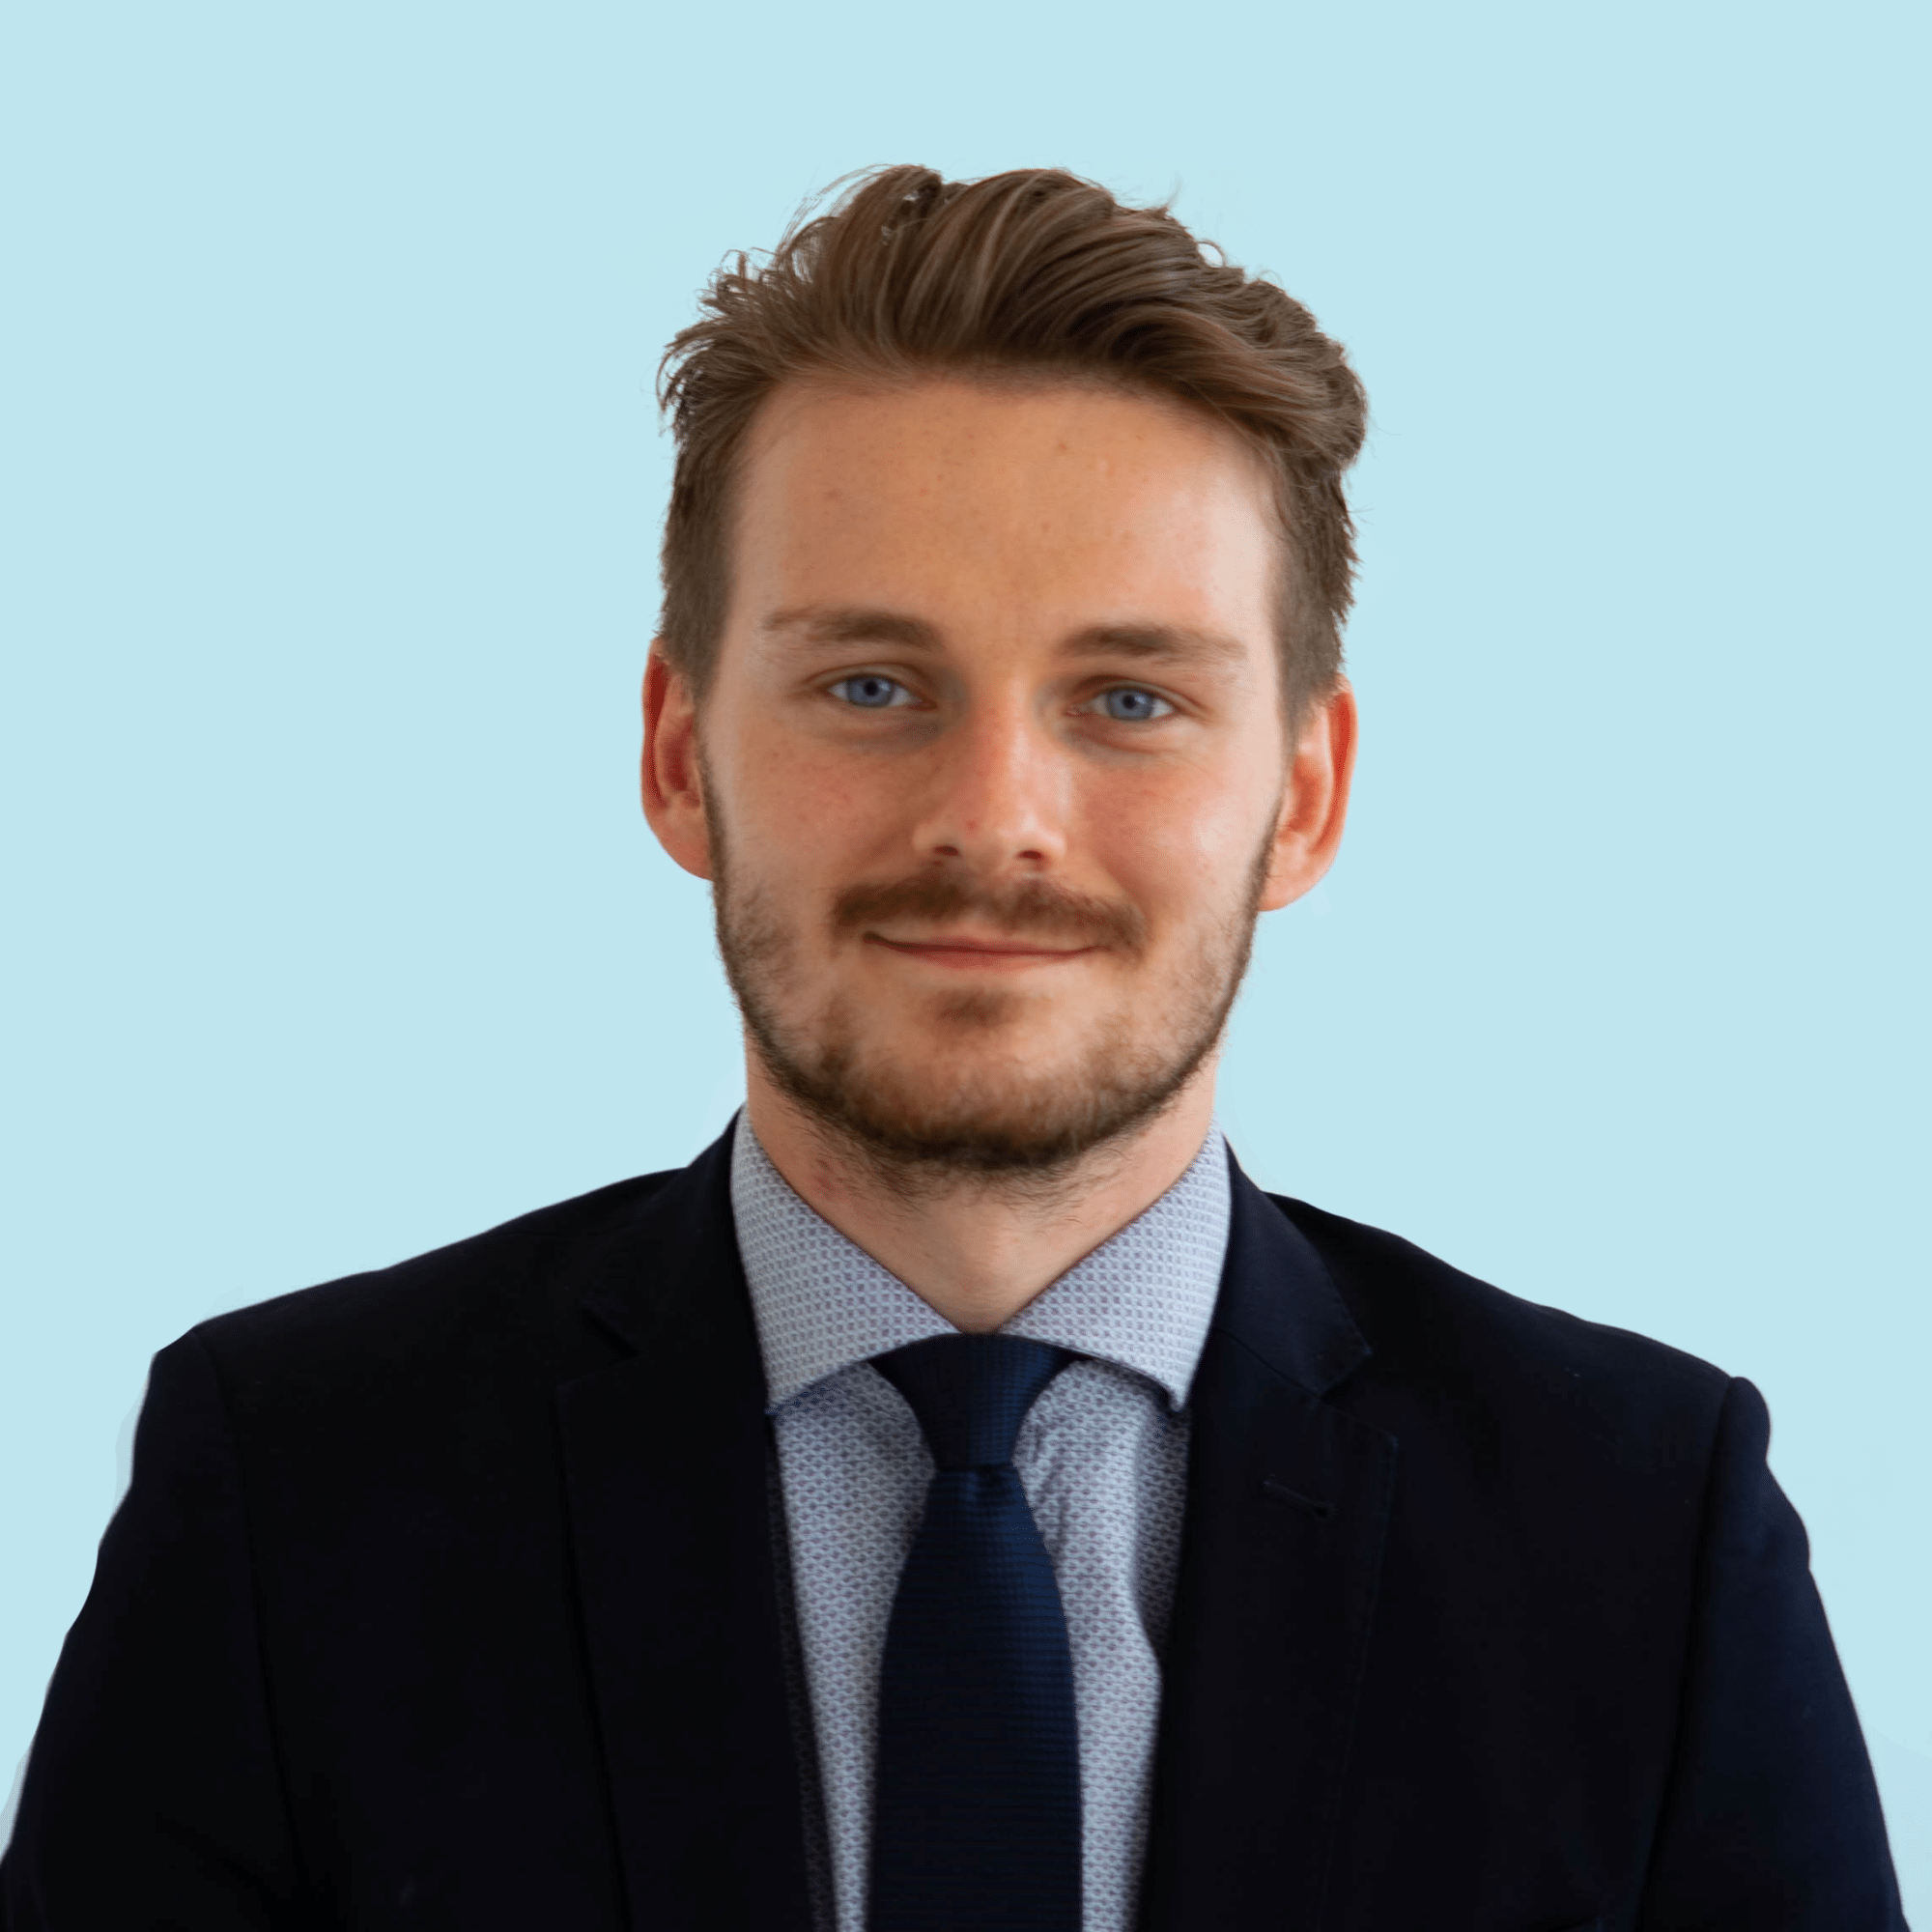 Rory Lindsay Litigation Paralegal expert in contesting a will